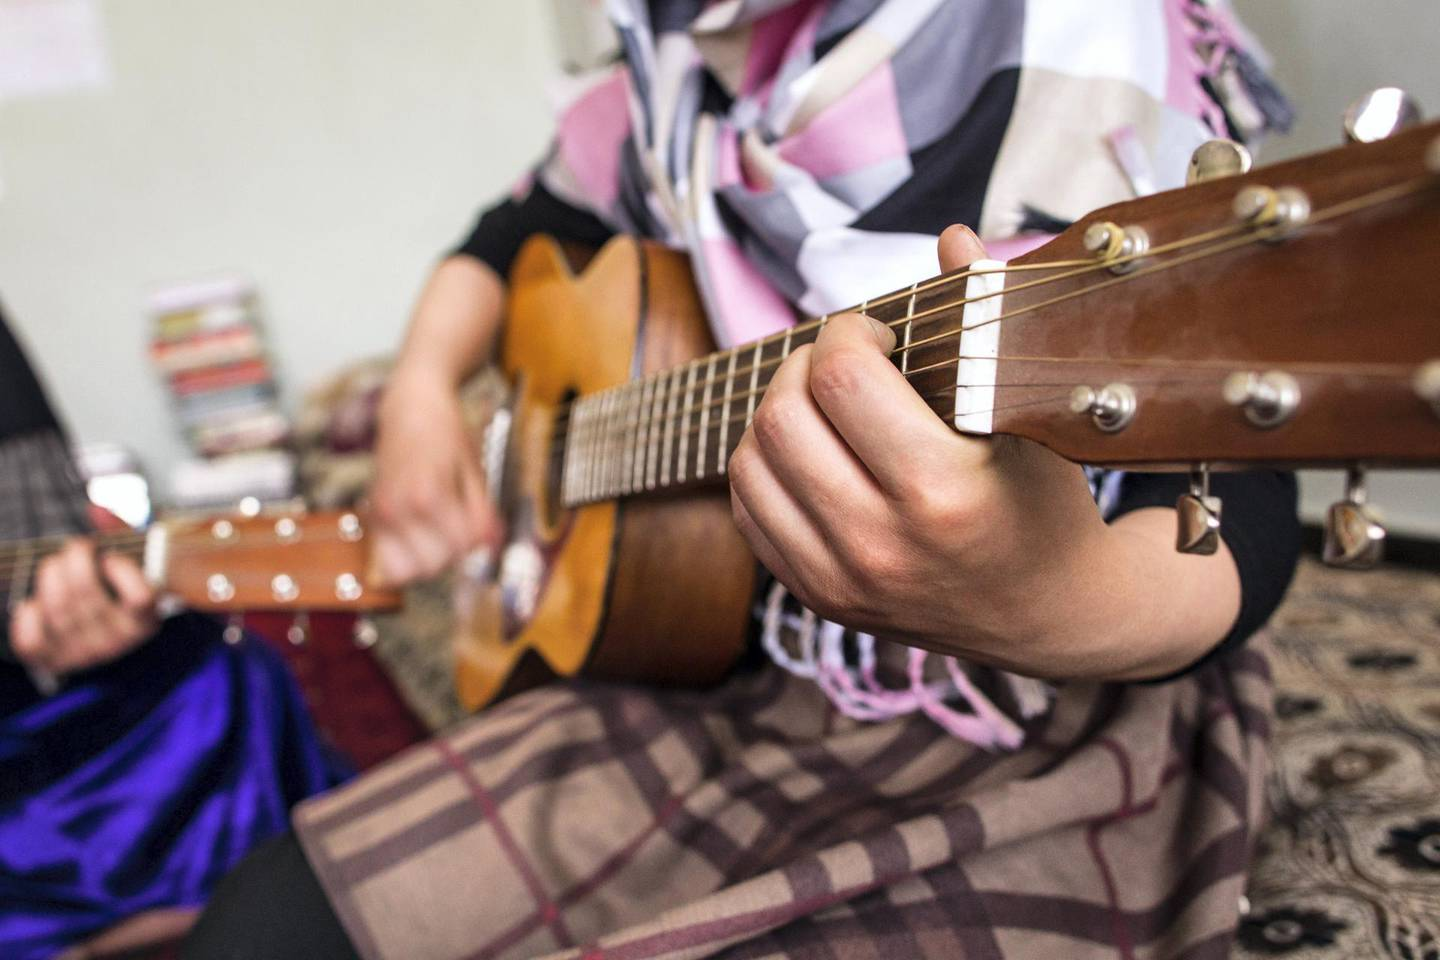 May 12, 2017 - Kabul, Kabul, Afghanistan: Two girls practice chord progressions on guitars. The children study with Lanny Cordola in Kabul.Cordola's work has grown increasingly challenging as the security situation in Kabul has worsened.(Ivan Flores/The National)